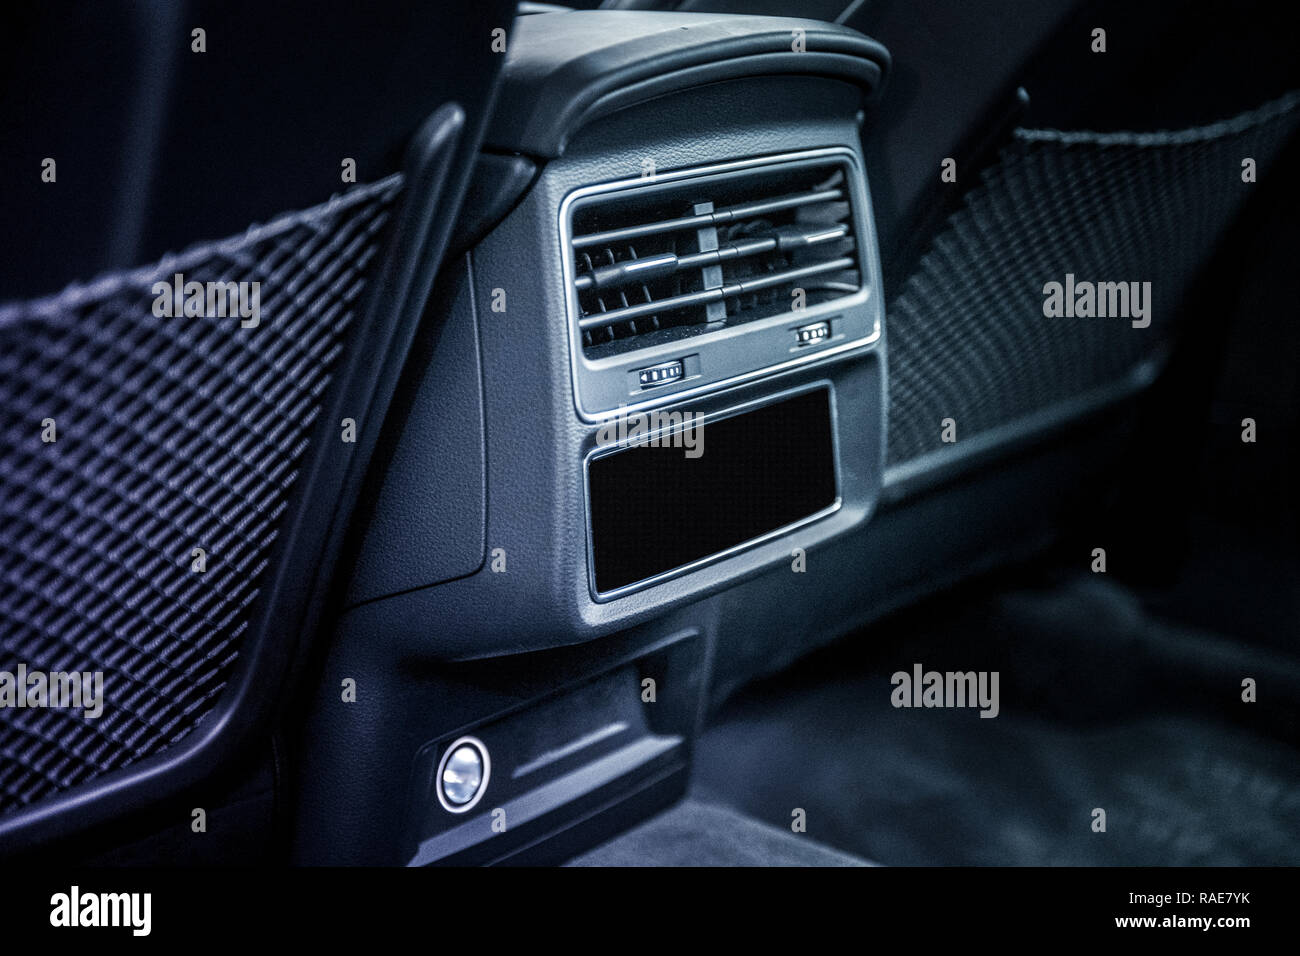 Close up of air conditioning system in car with leather interior - Stock Image